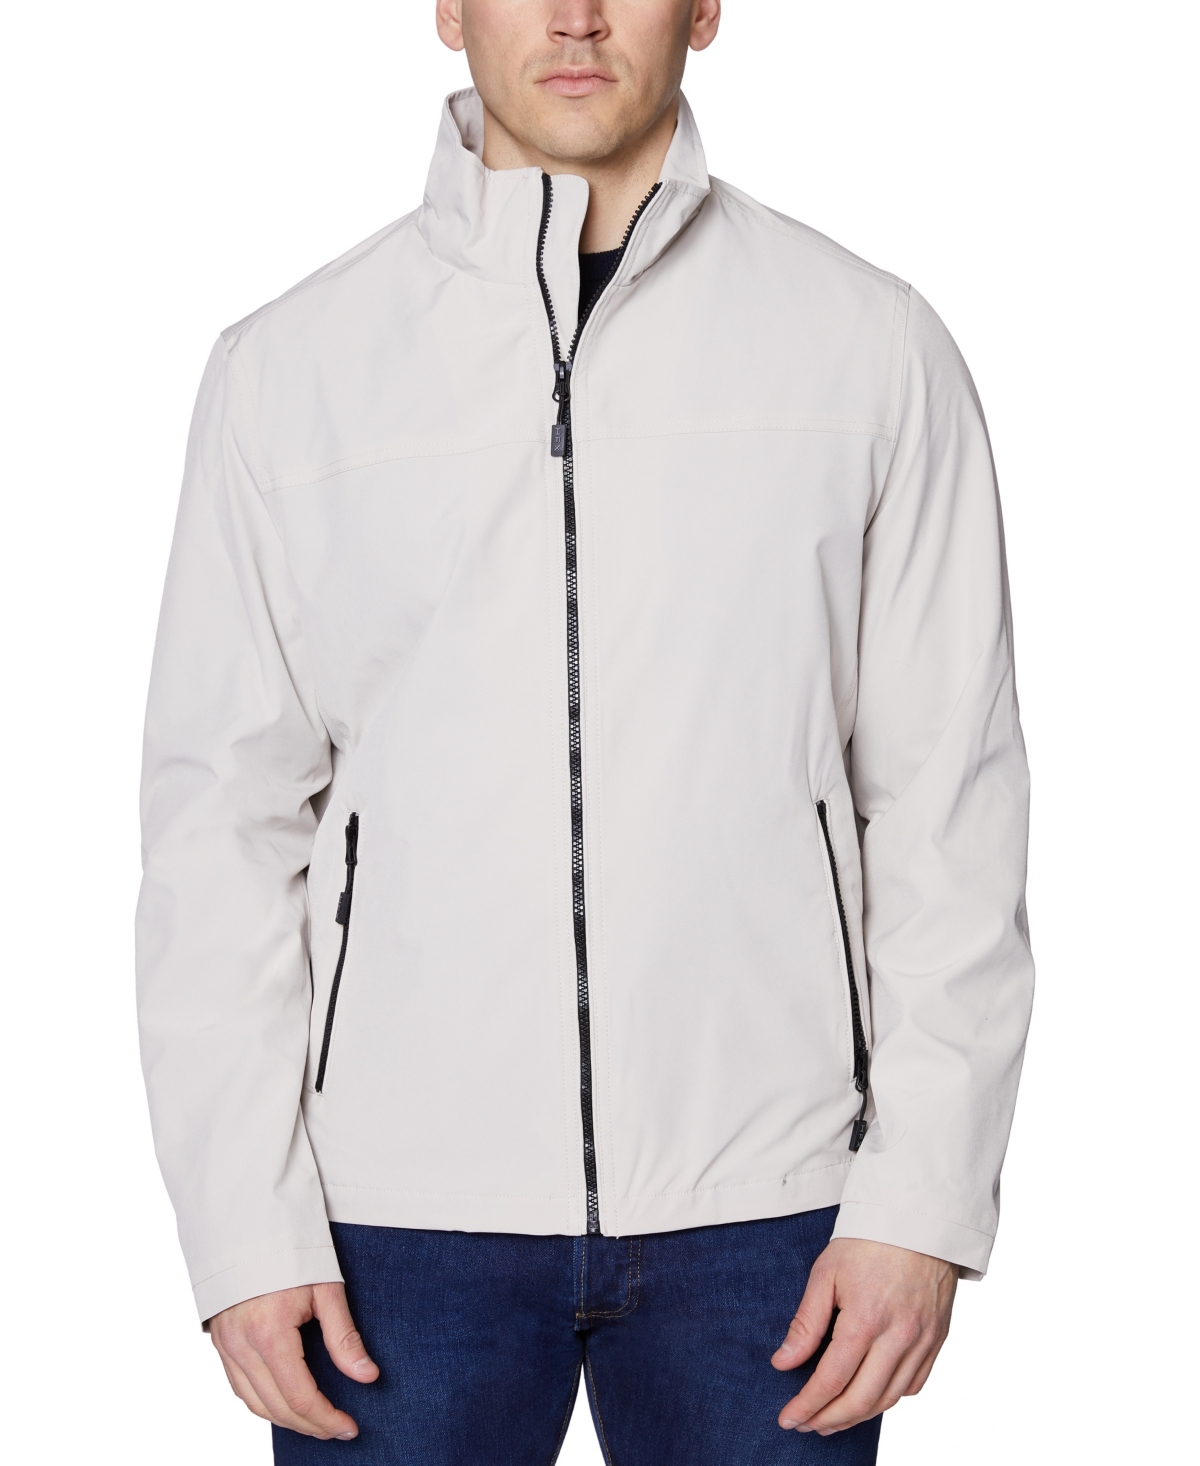 Halifax Men's Big and Tall Poly Zip Front Jacket